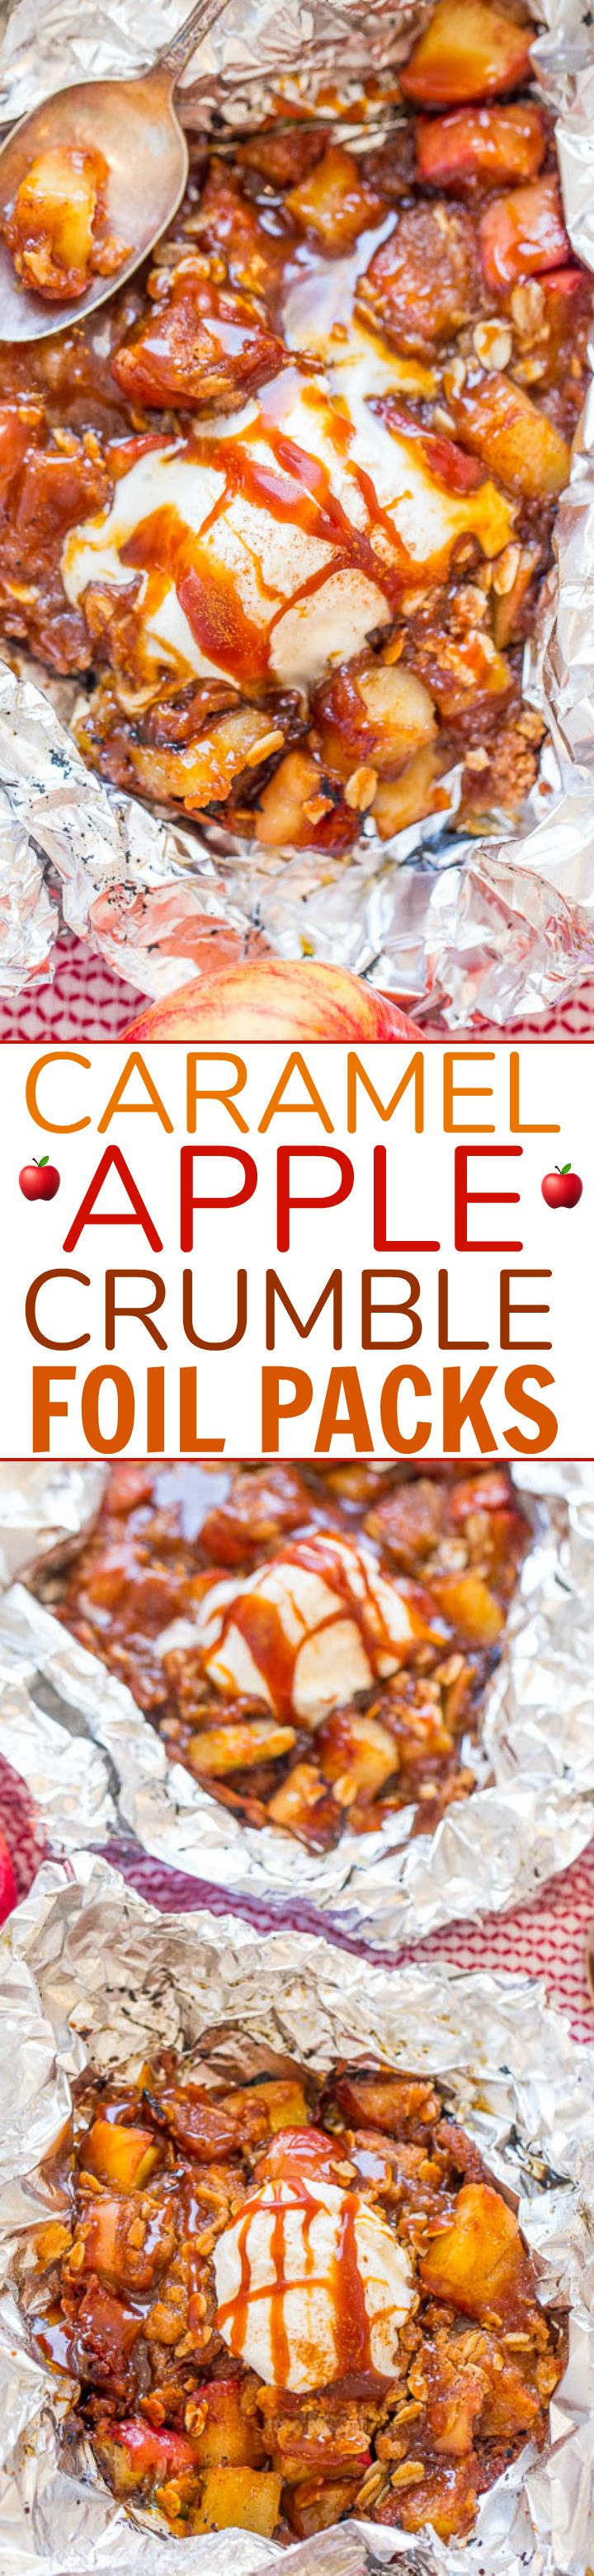 Caramel Apple Crumble Foil Packs - EASY, zero cleanup, made on the grill (or oven) in record time, and DELISH!! Juicy apples, chewy crumble topping, and luscious salted caramel! So irresistible!!